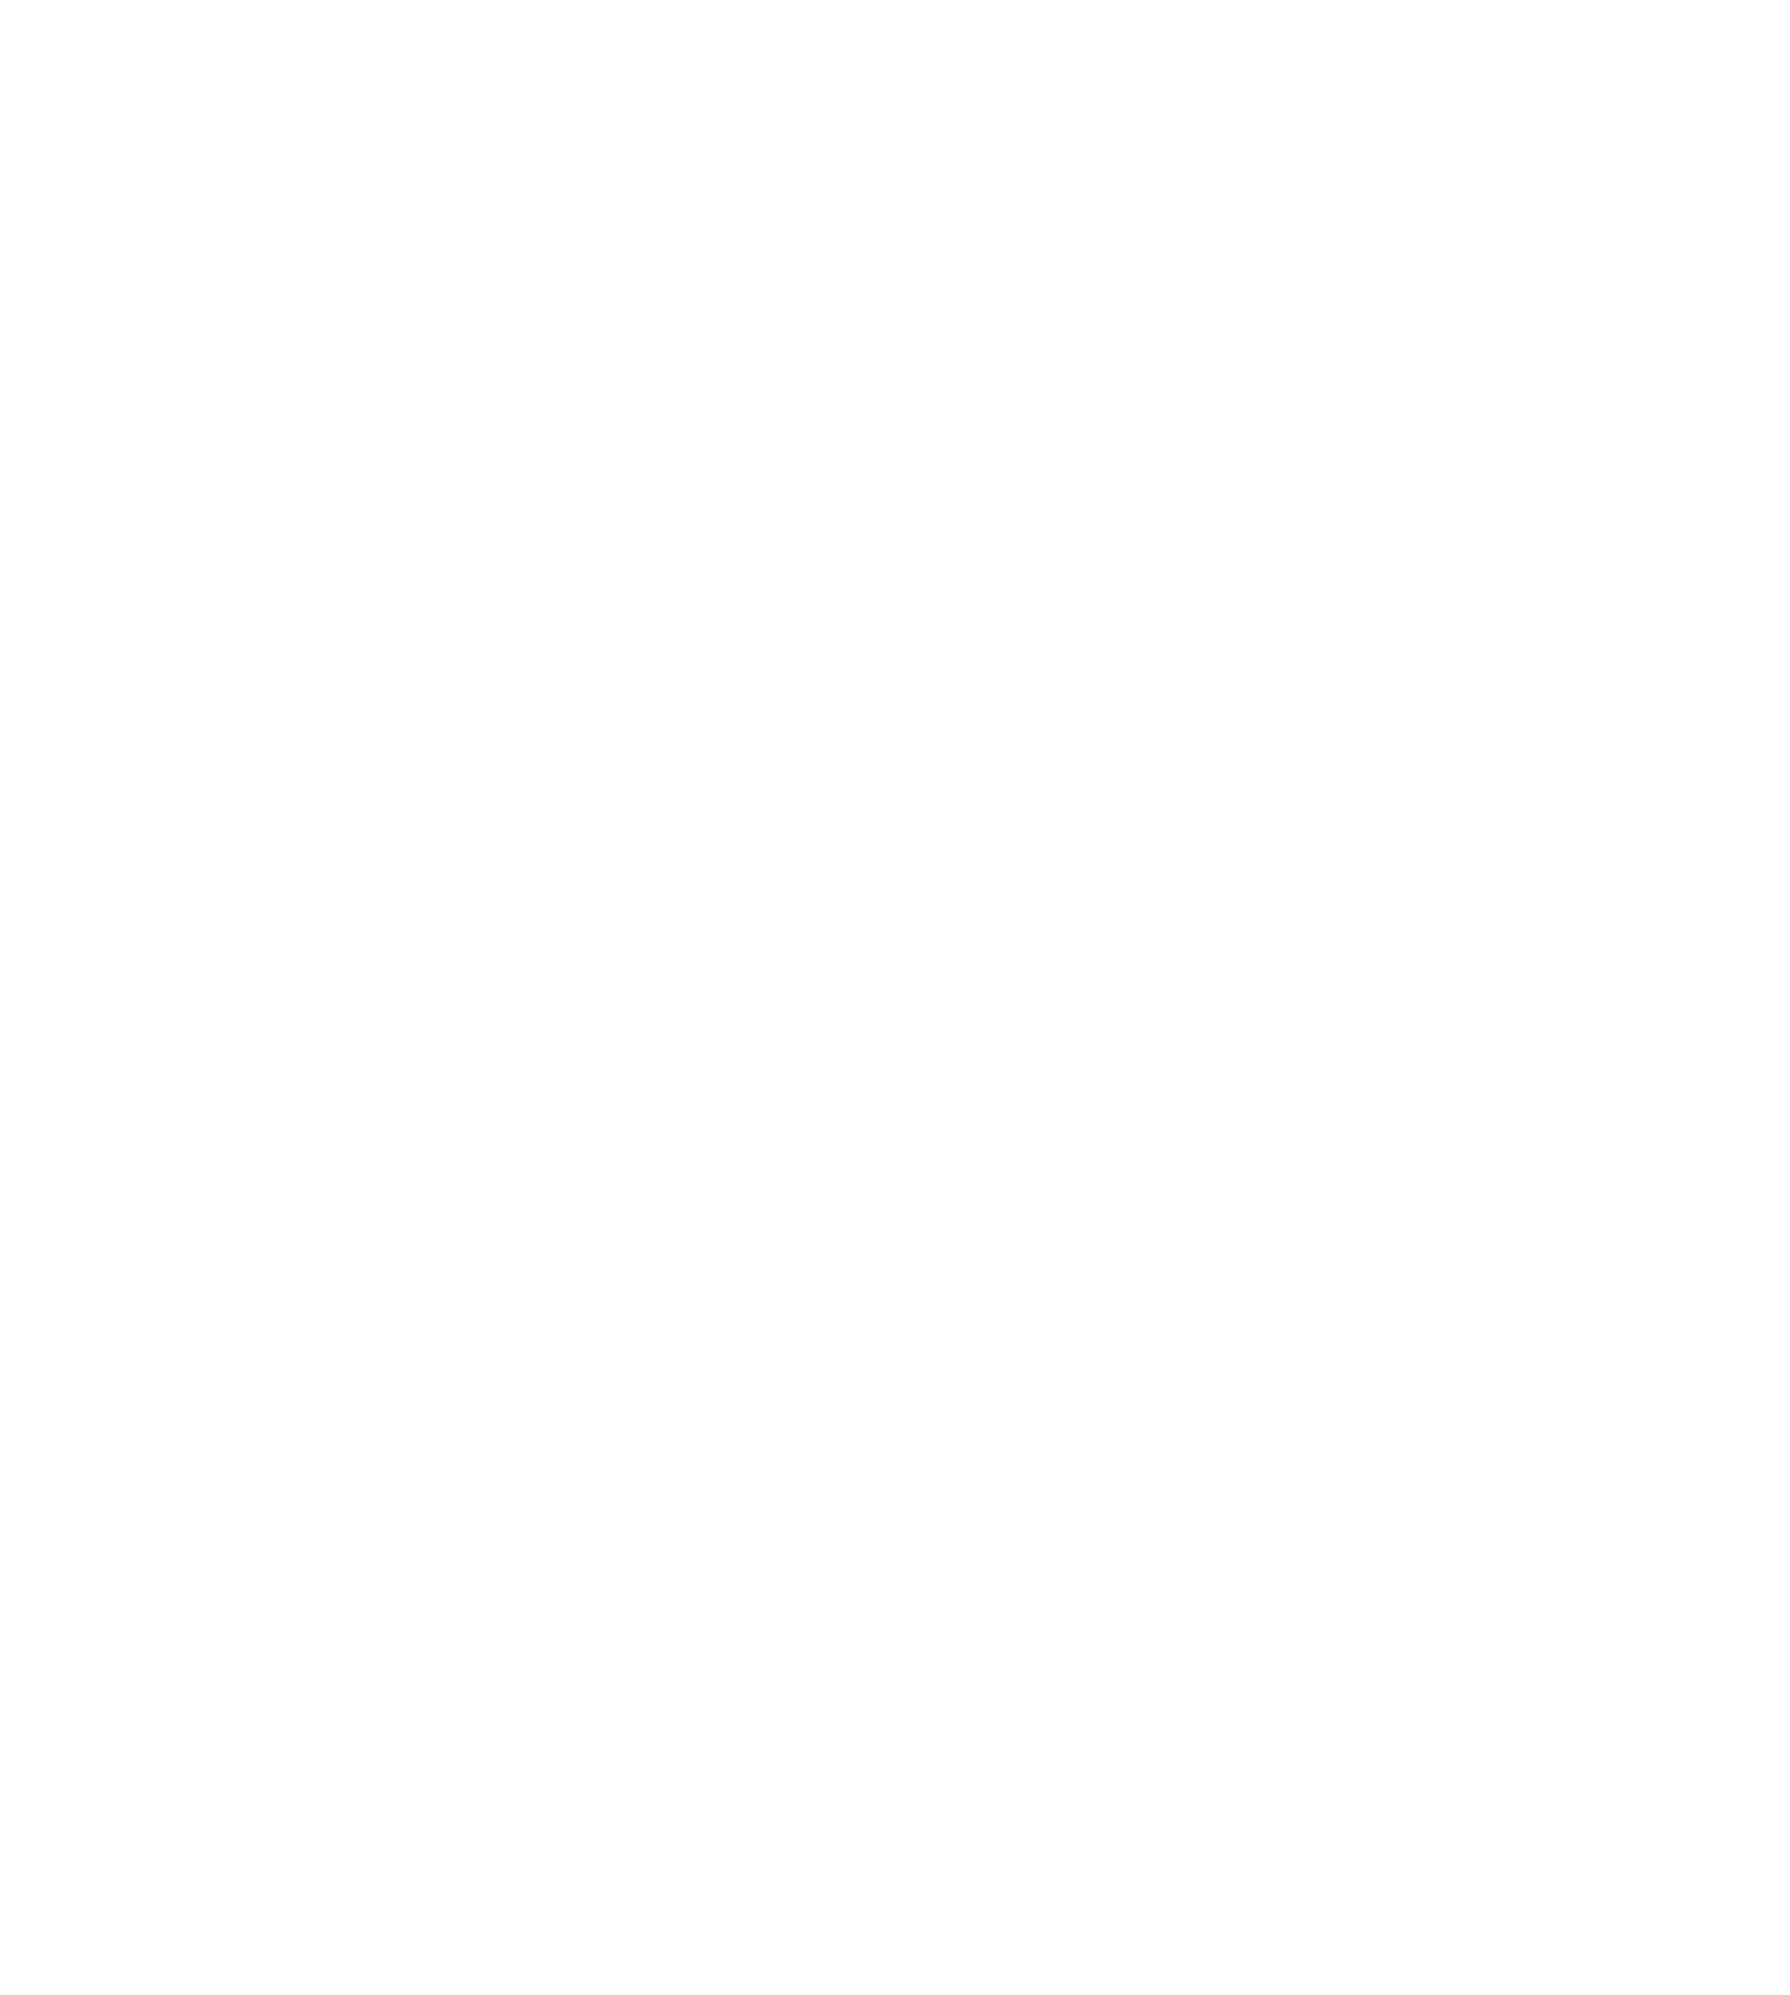 White Magnifying Glass Png Magnifying Glass White Icon.